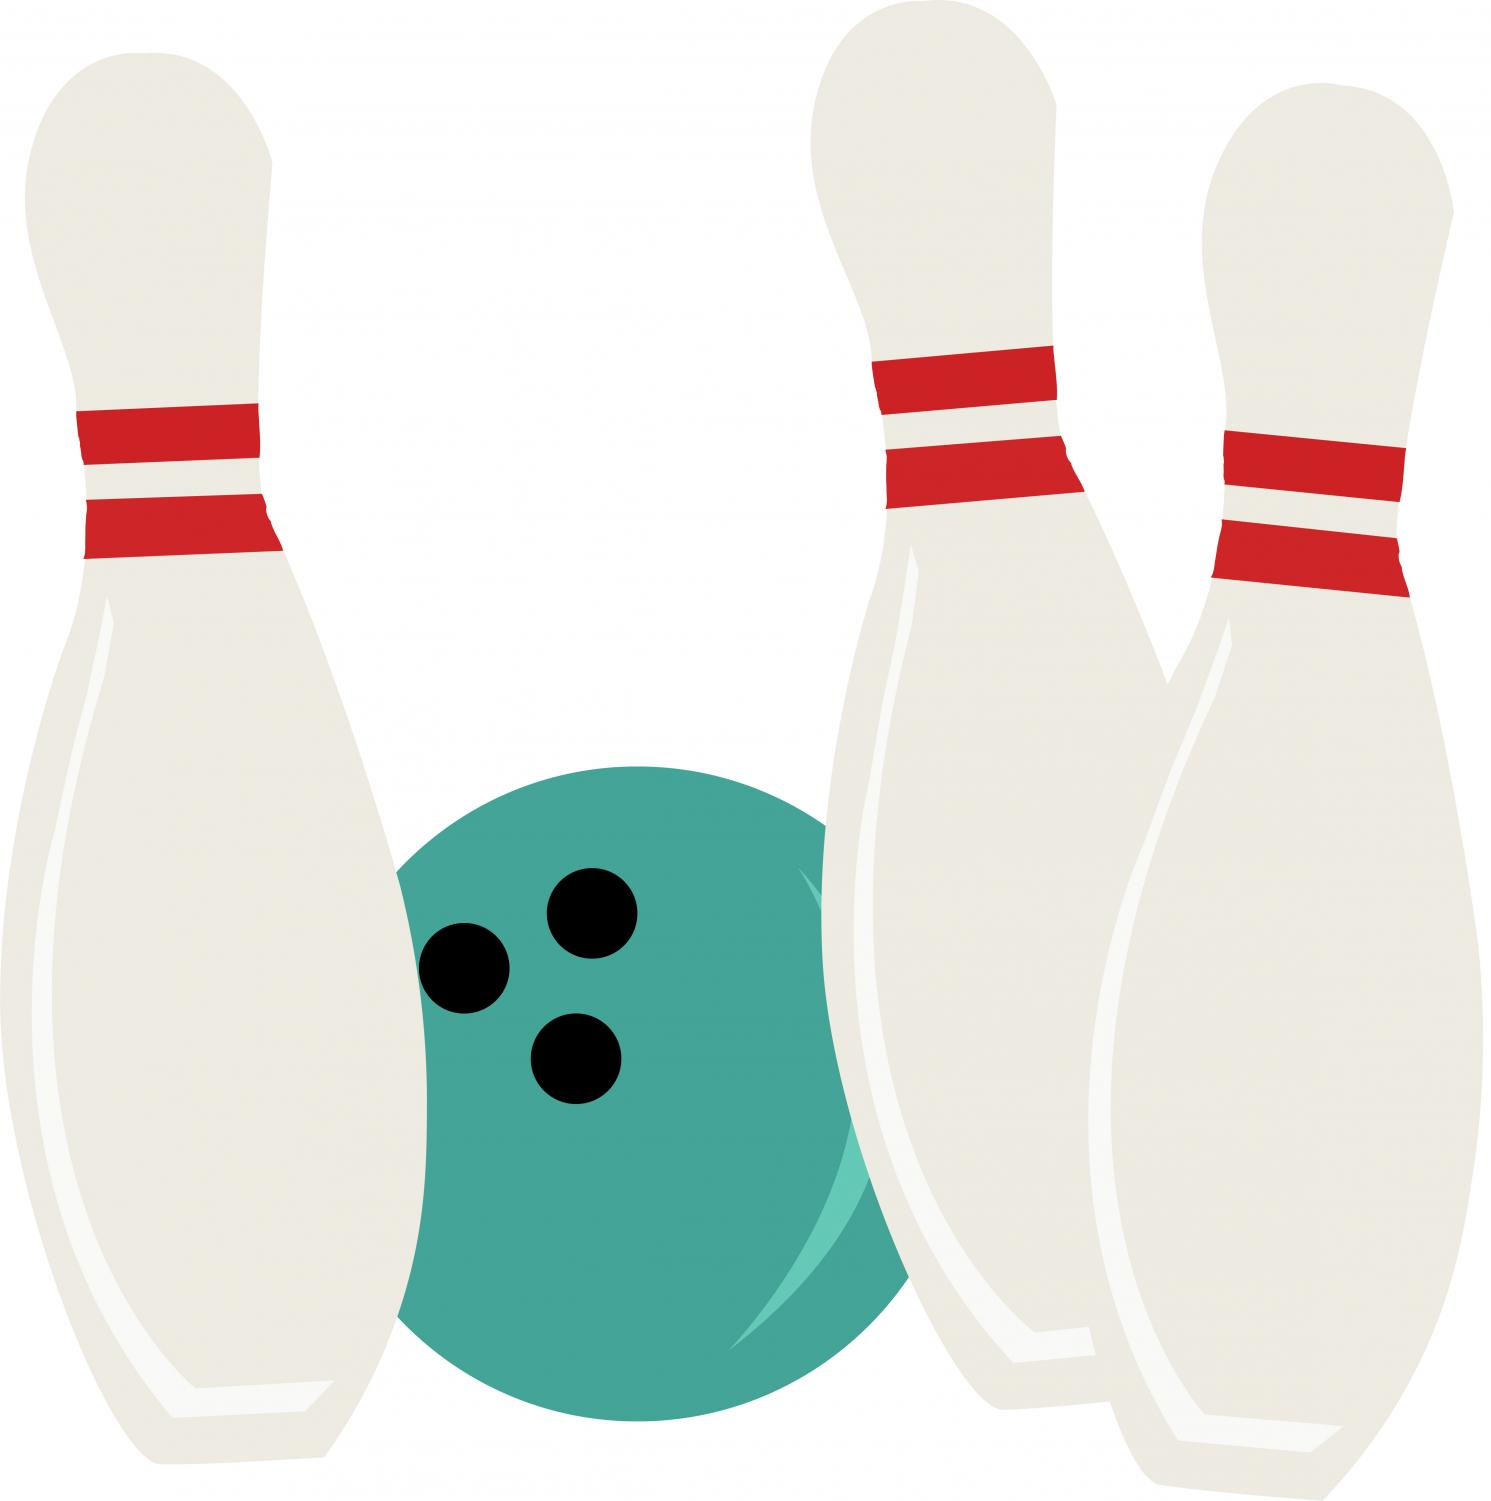 Over at Westgate lanes, Bowie's bowling club, the